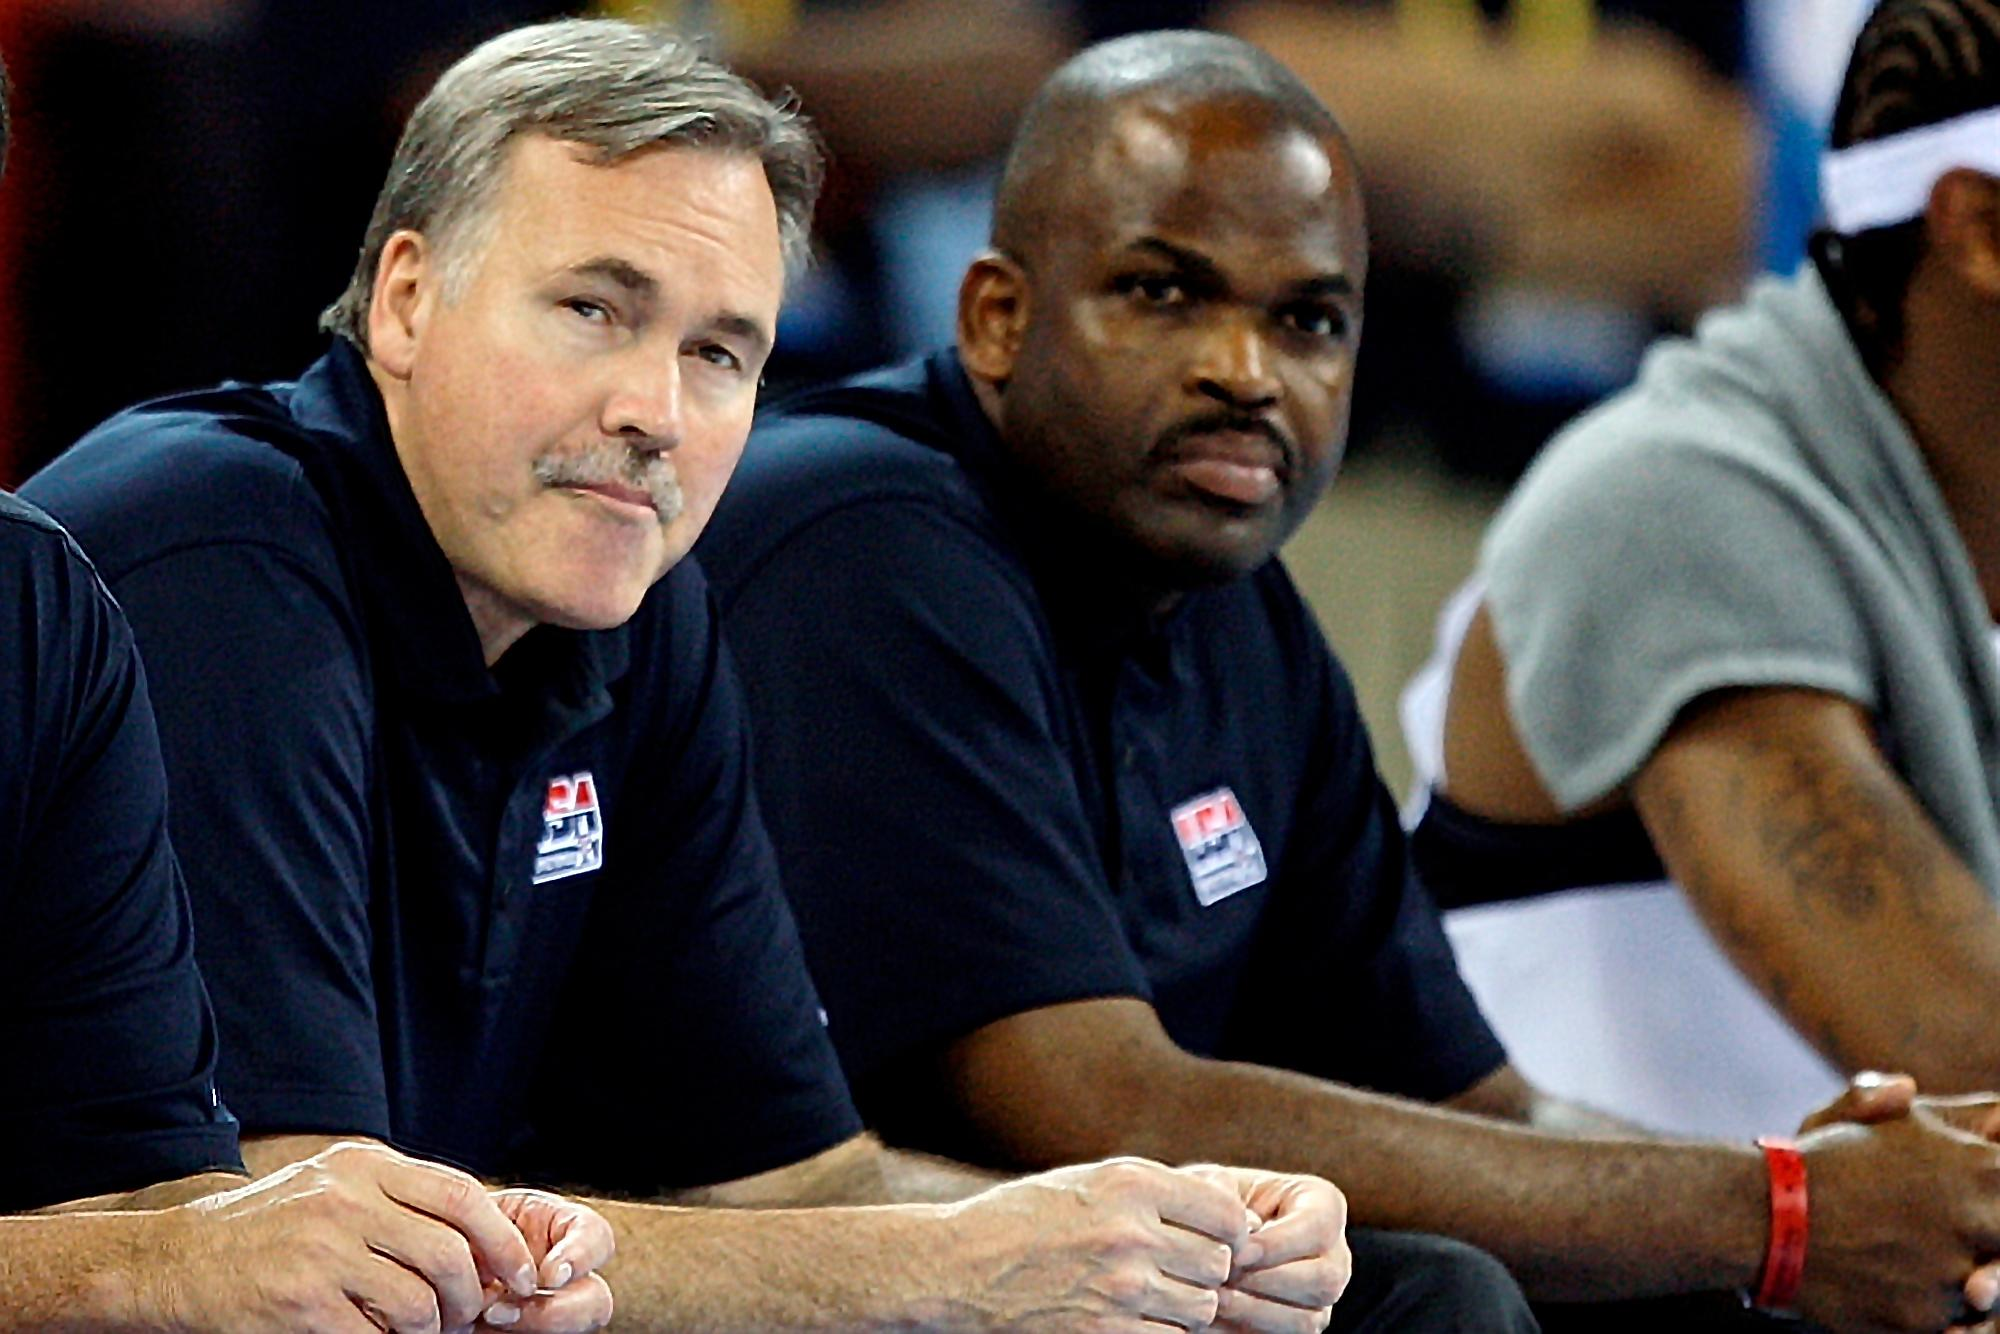 FILE - In this Aug. 10 2008, file photo, United States assistant coaches Mike D'Antoni,. left, and Nate McMillan watch during the men's basketball game at the Beijing 2008 Olympics in Beijing. Both coaches have spent an extended stretch away from home during the summer. While unprecedented as part of an NBA season, it isn't exactly a foreign concept for those with USA Basketball experience like the Olympics and the World Cup. (AP Photo/Dusan Vranic, File)